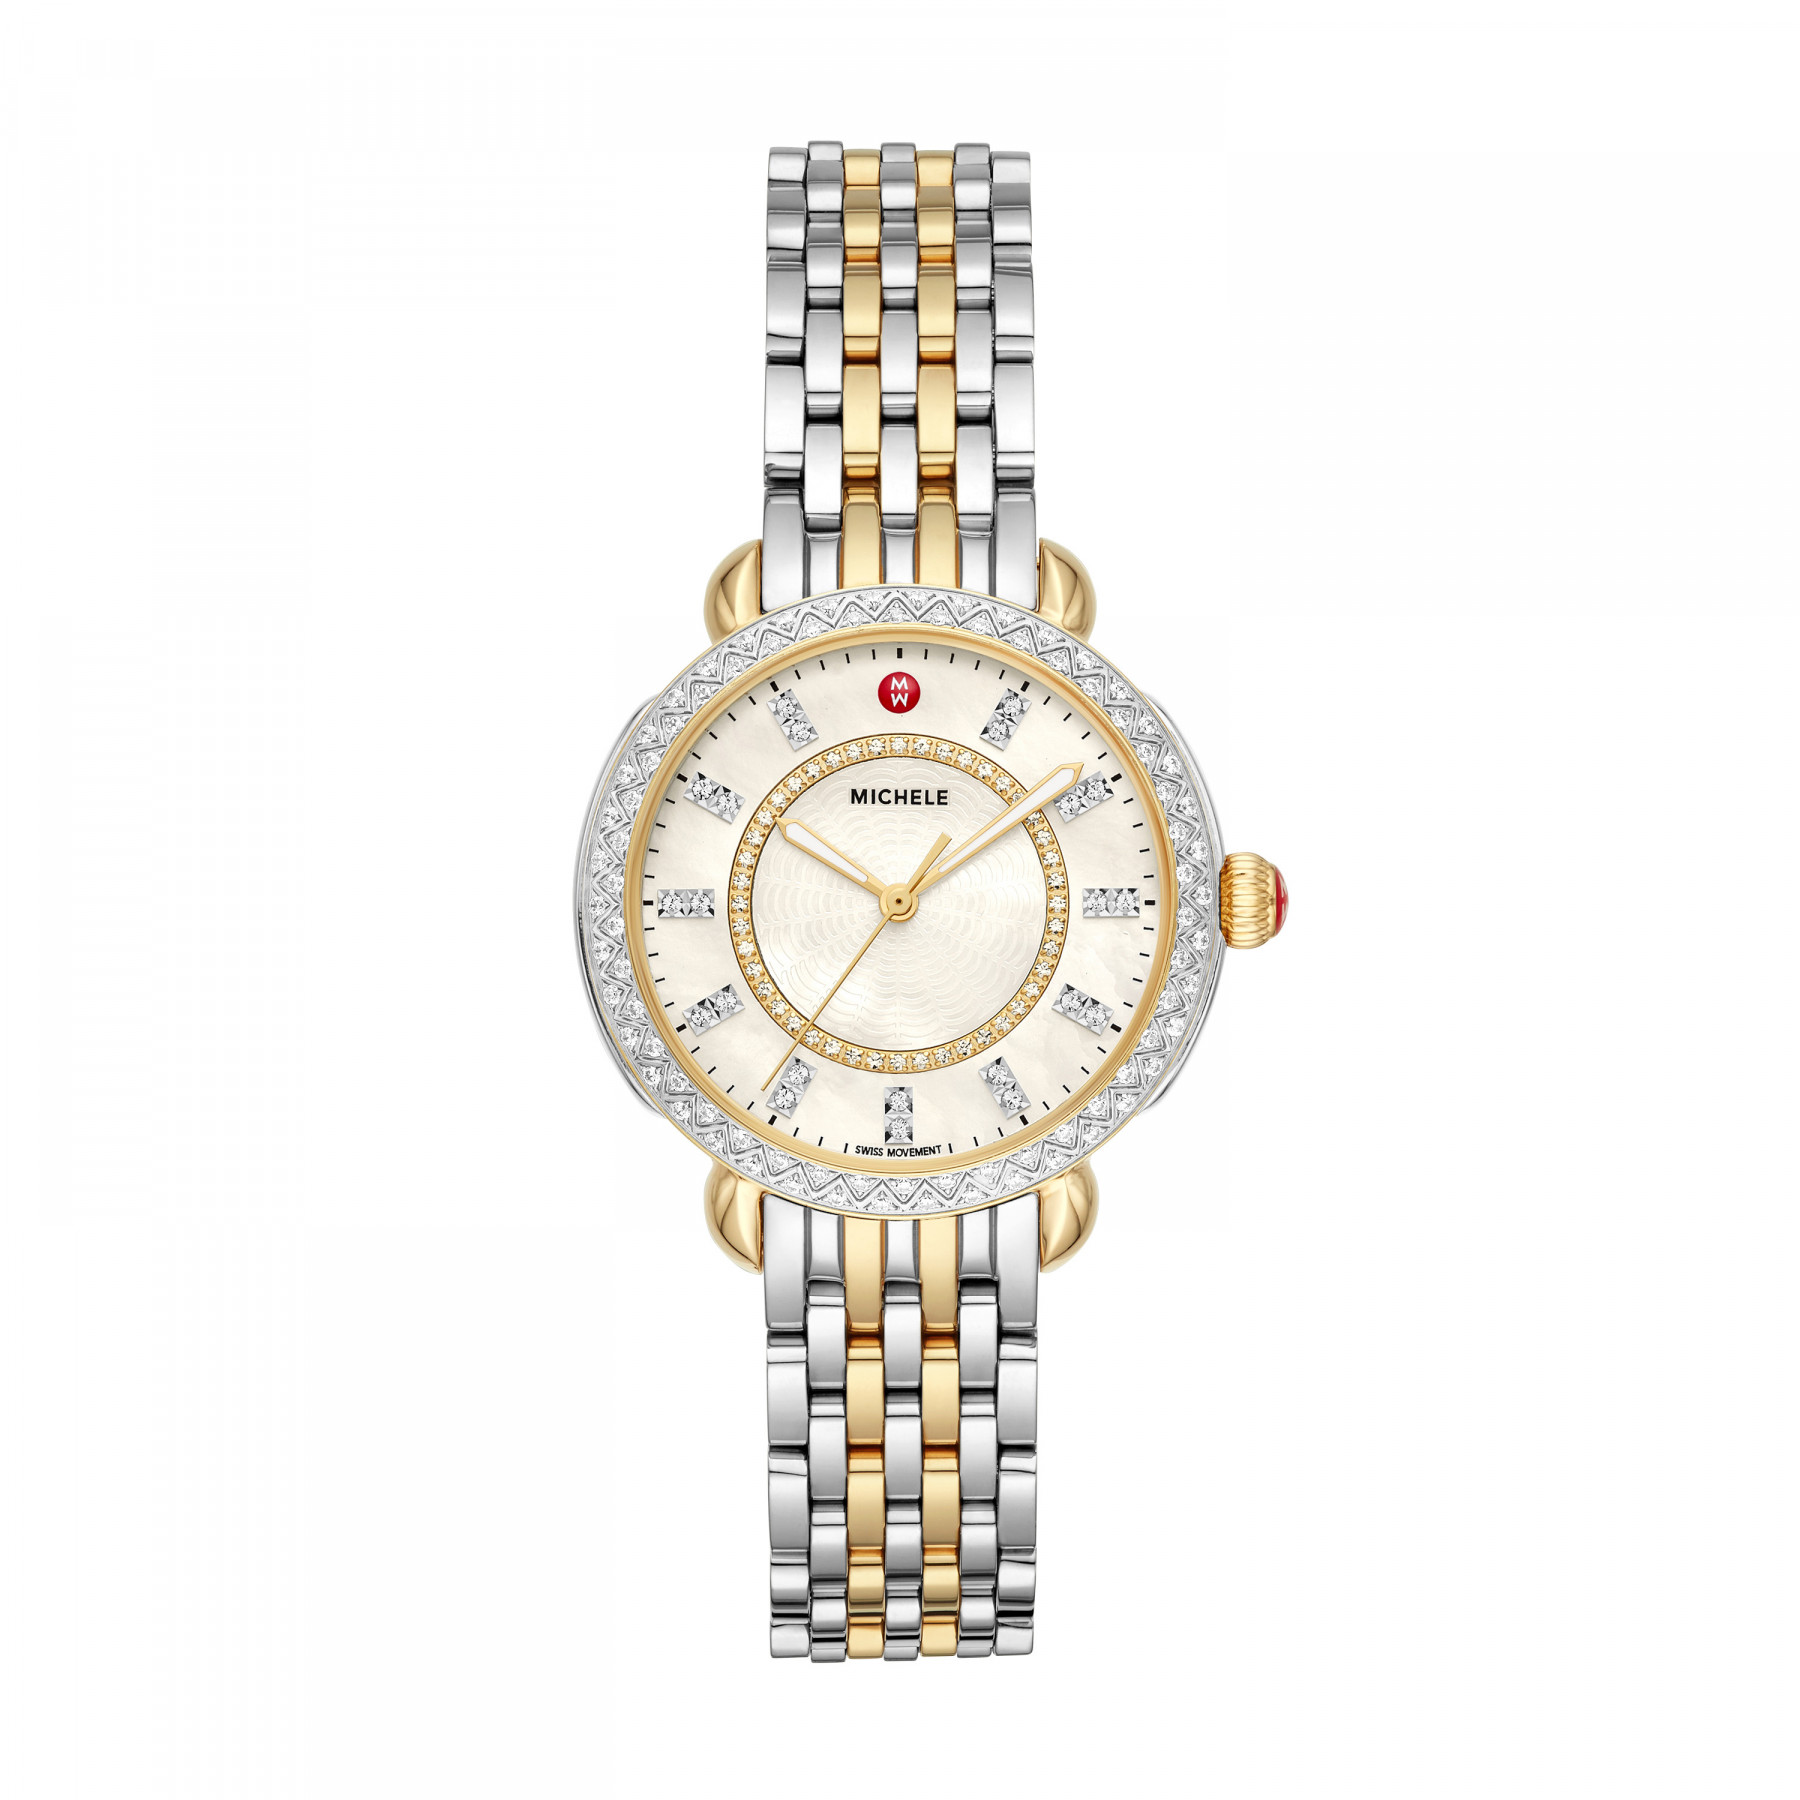 Michele Sidney Classic Steel and Gold Watch - 33mm front view